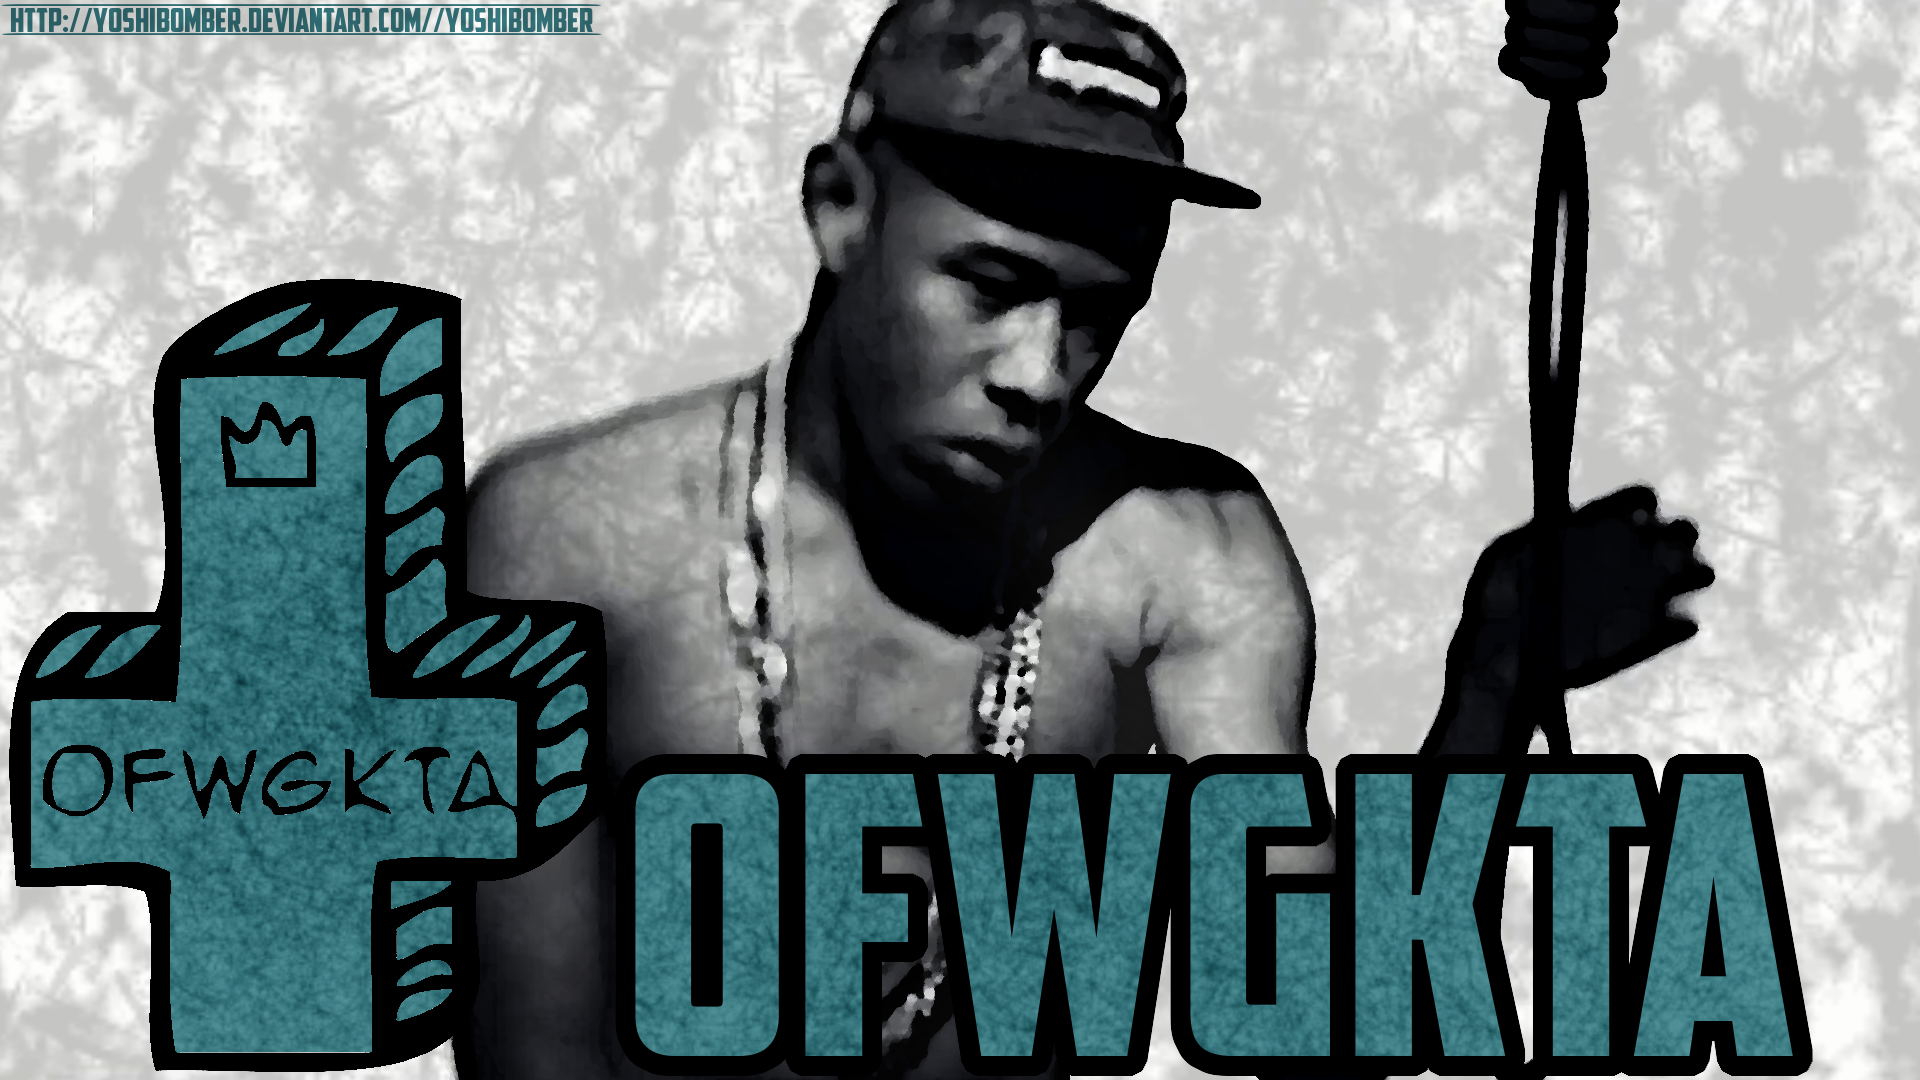 OFWGKTA Wallpaper By Yoshibomber